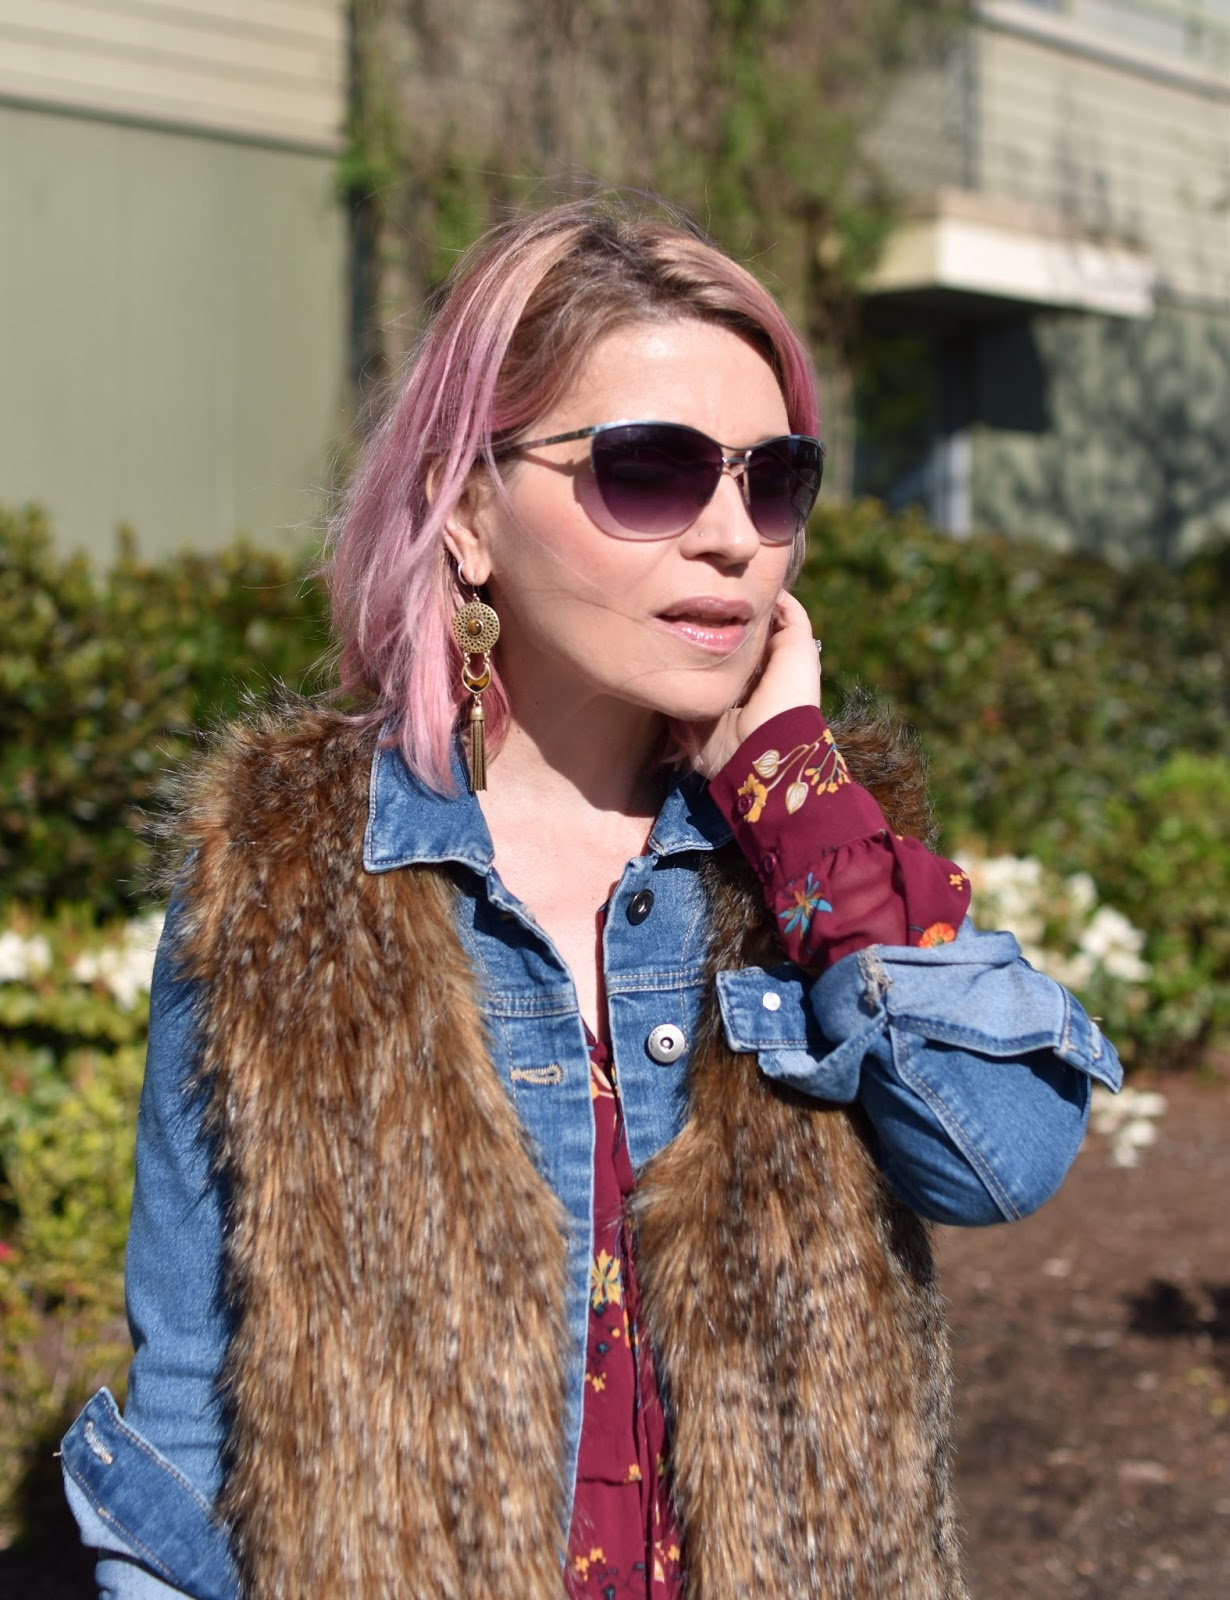 Monika Faulkner outfit inspiration - floral maxi dress, denim jacket, faux-fur vest, sunglasses